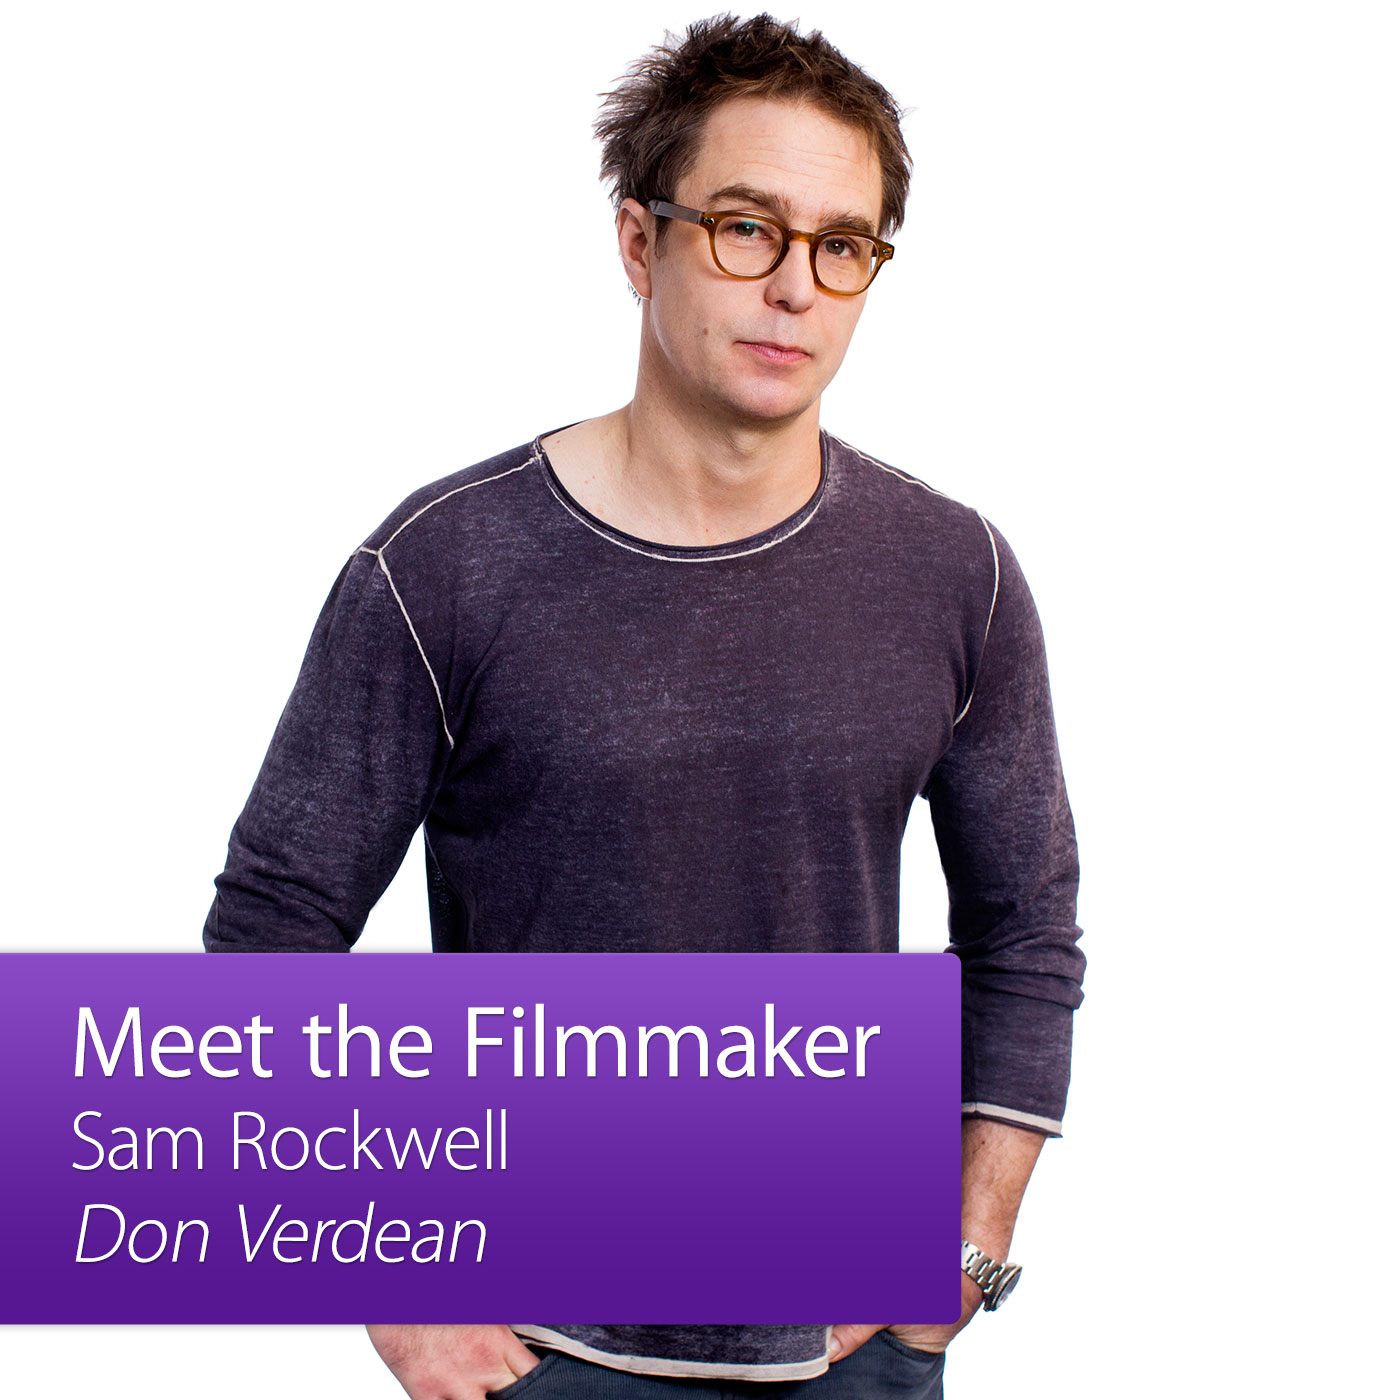 Don Verdean: Meet the Filmmaker